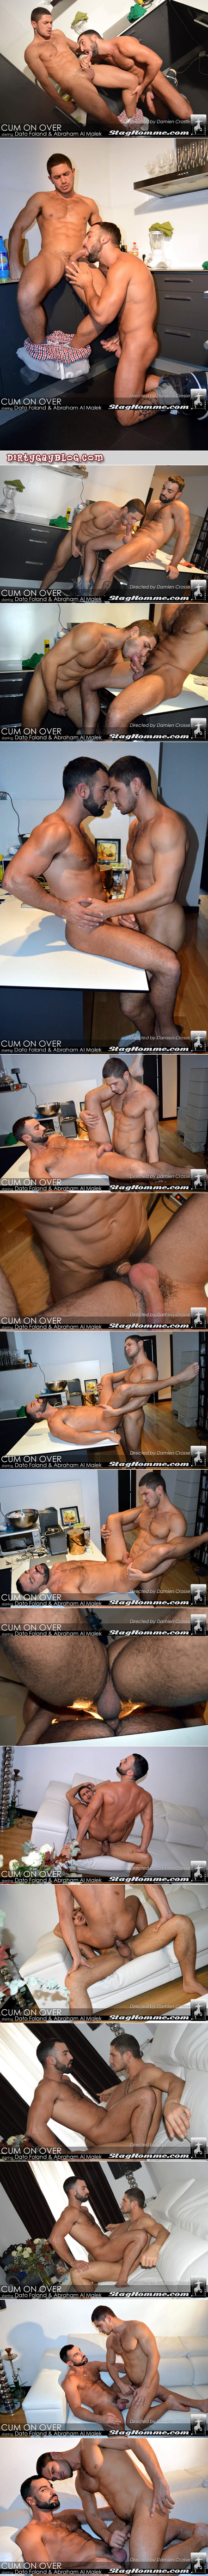 Muscular Arab guy fucked for the first time by a hung Spanish man.